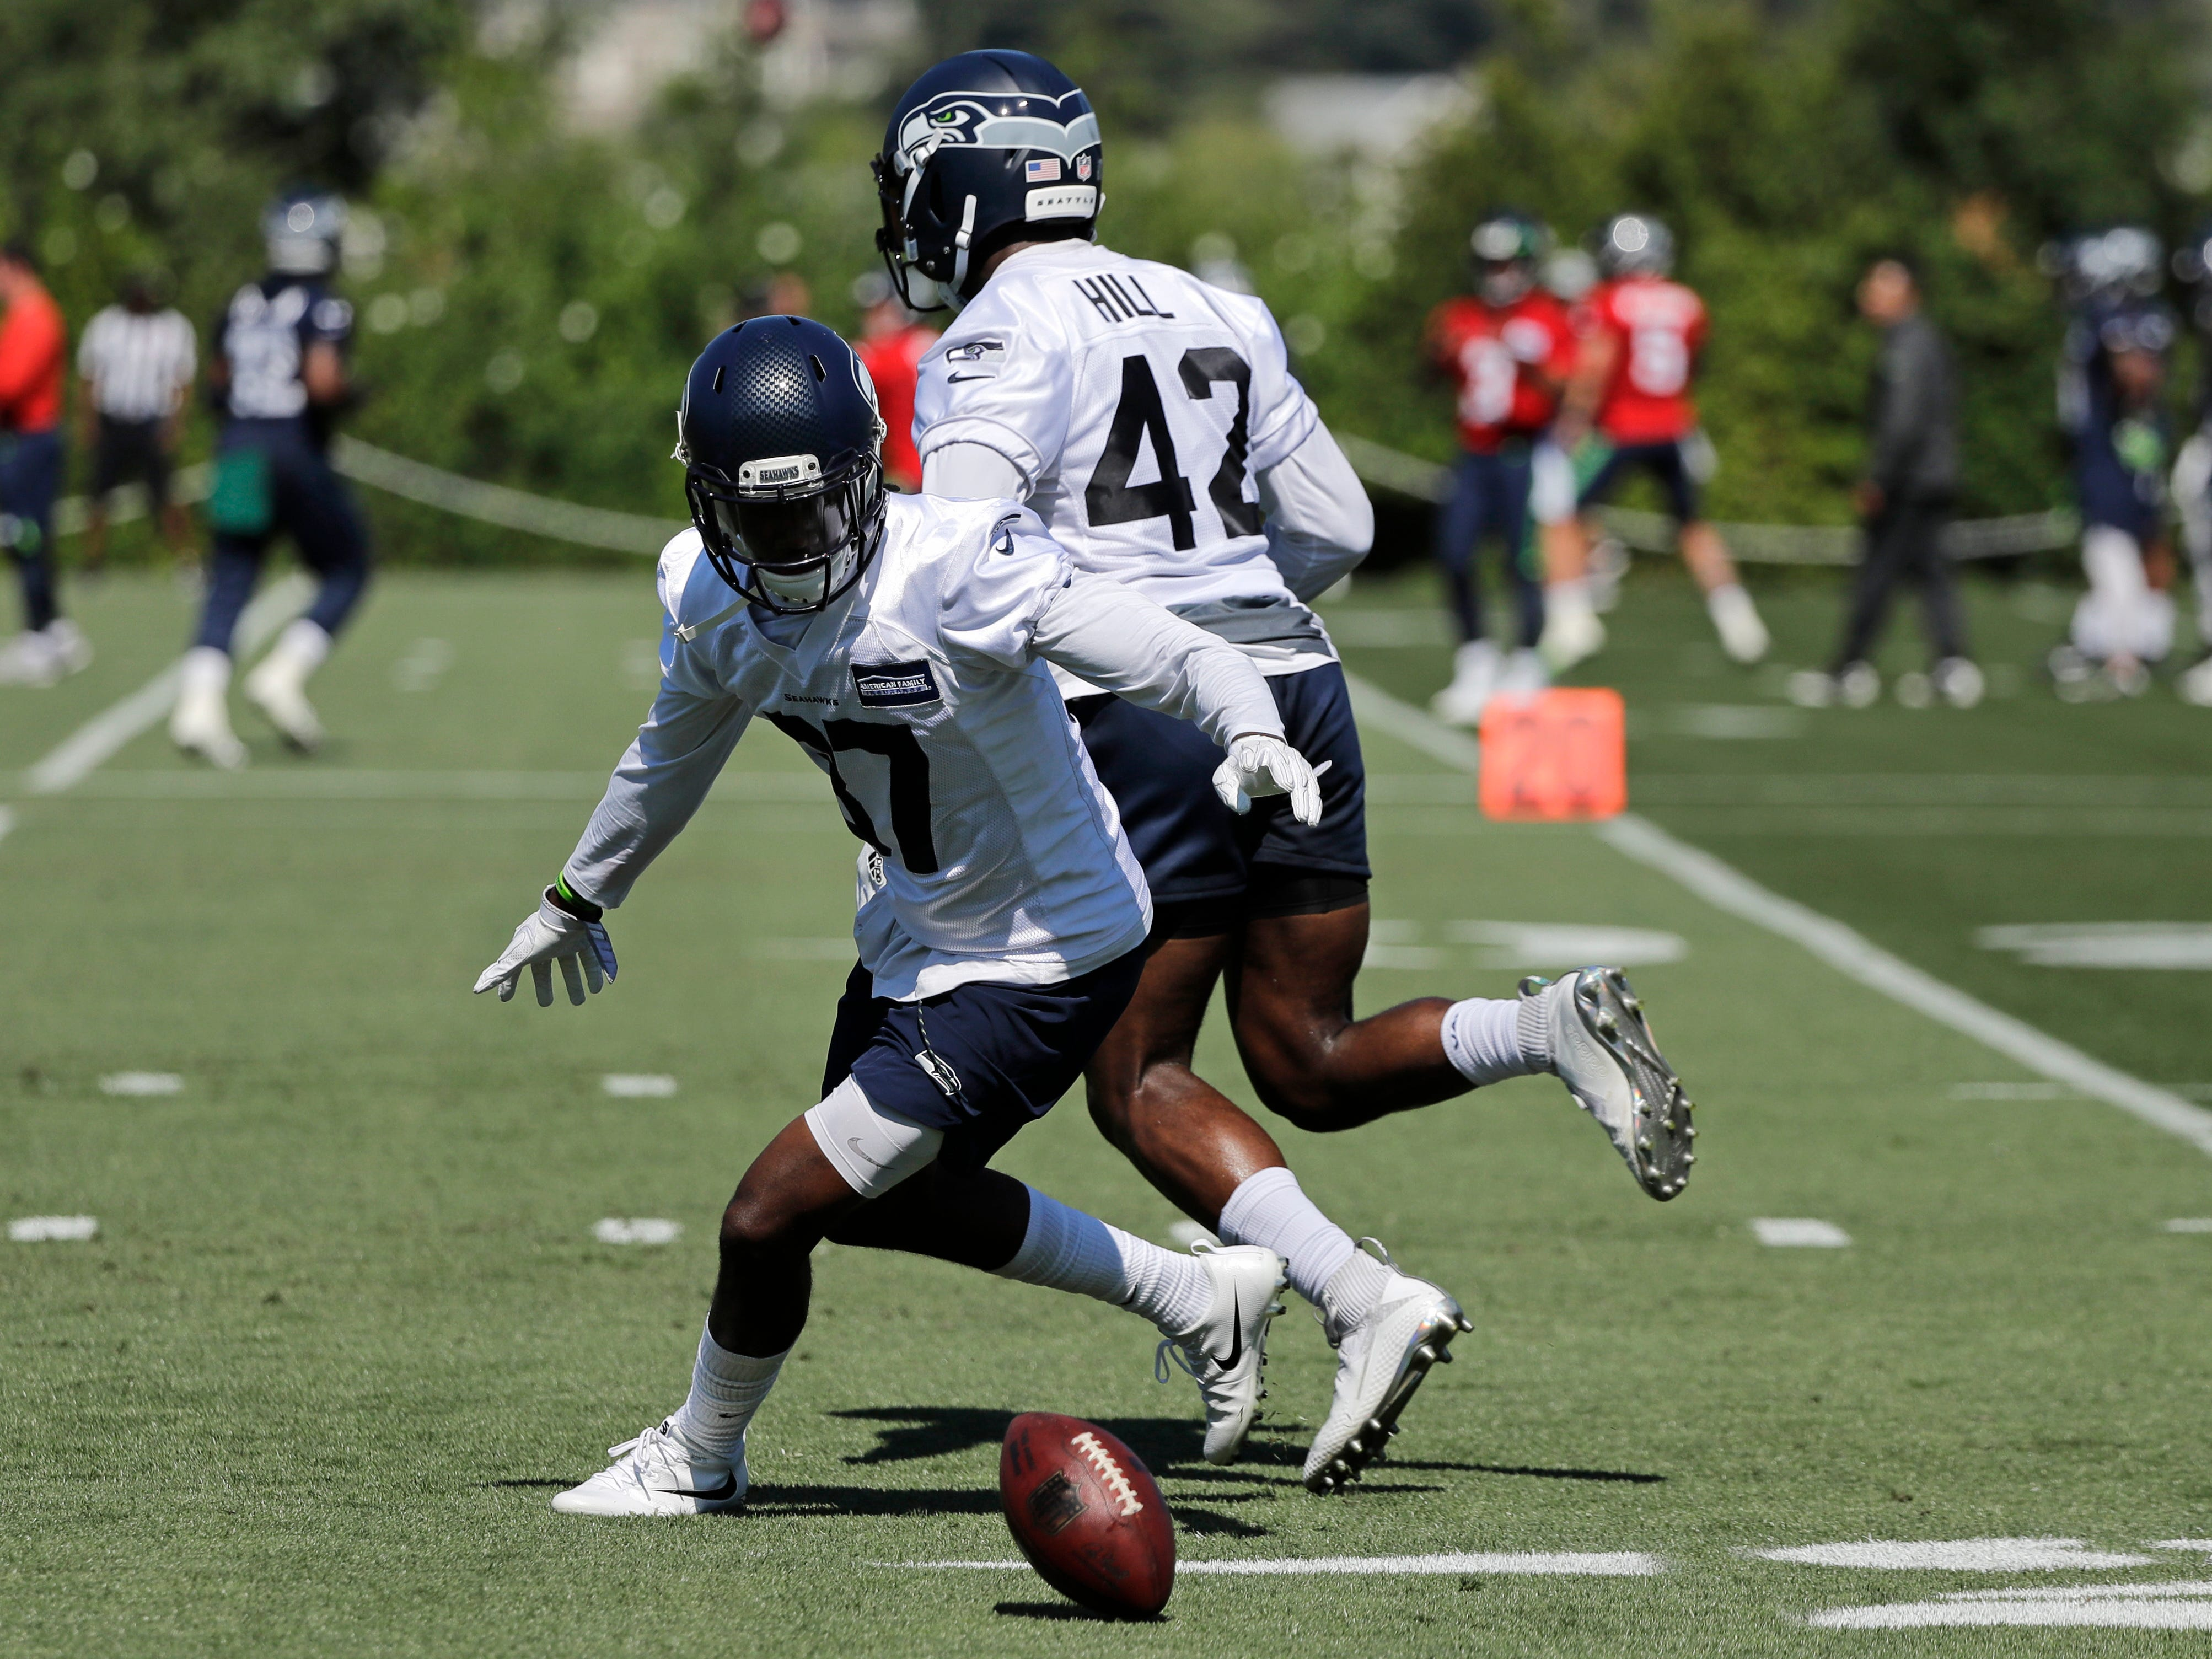 Seattle Seahawks cornerback Tre Flowers left, eyes the ball after he knocked it out of the hands of defensive back Delano Hill, right, during a drill at NFL football training camp, Thursday, July 26, 2018, in Renton, Wash. (AP Photo/Ted S. Warren)